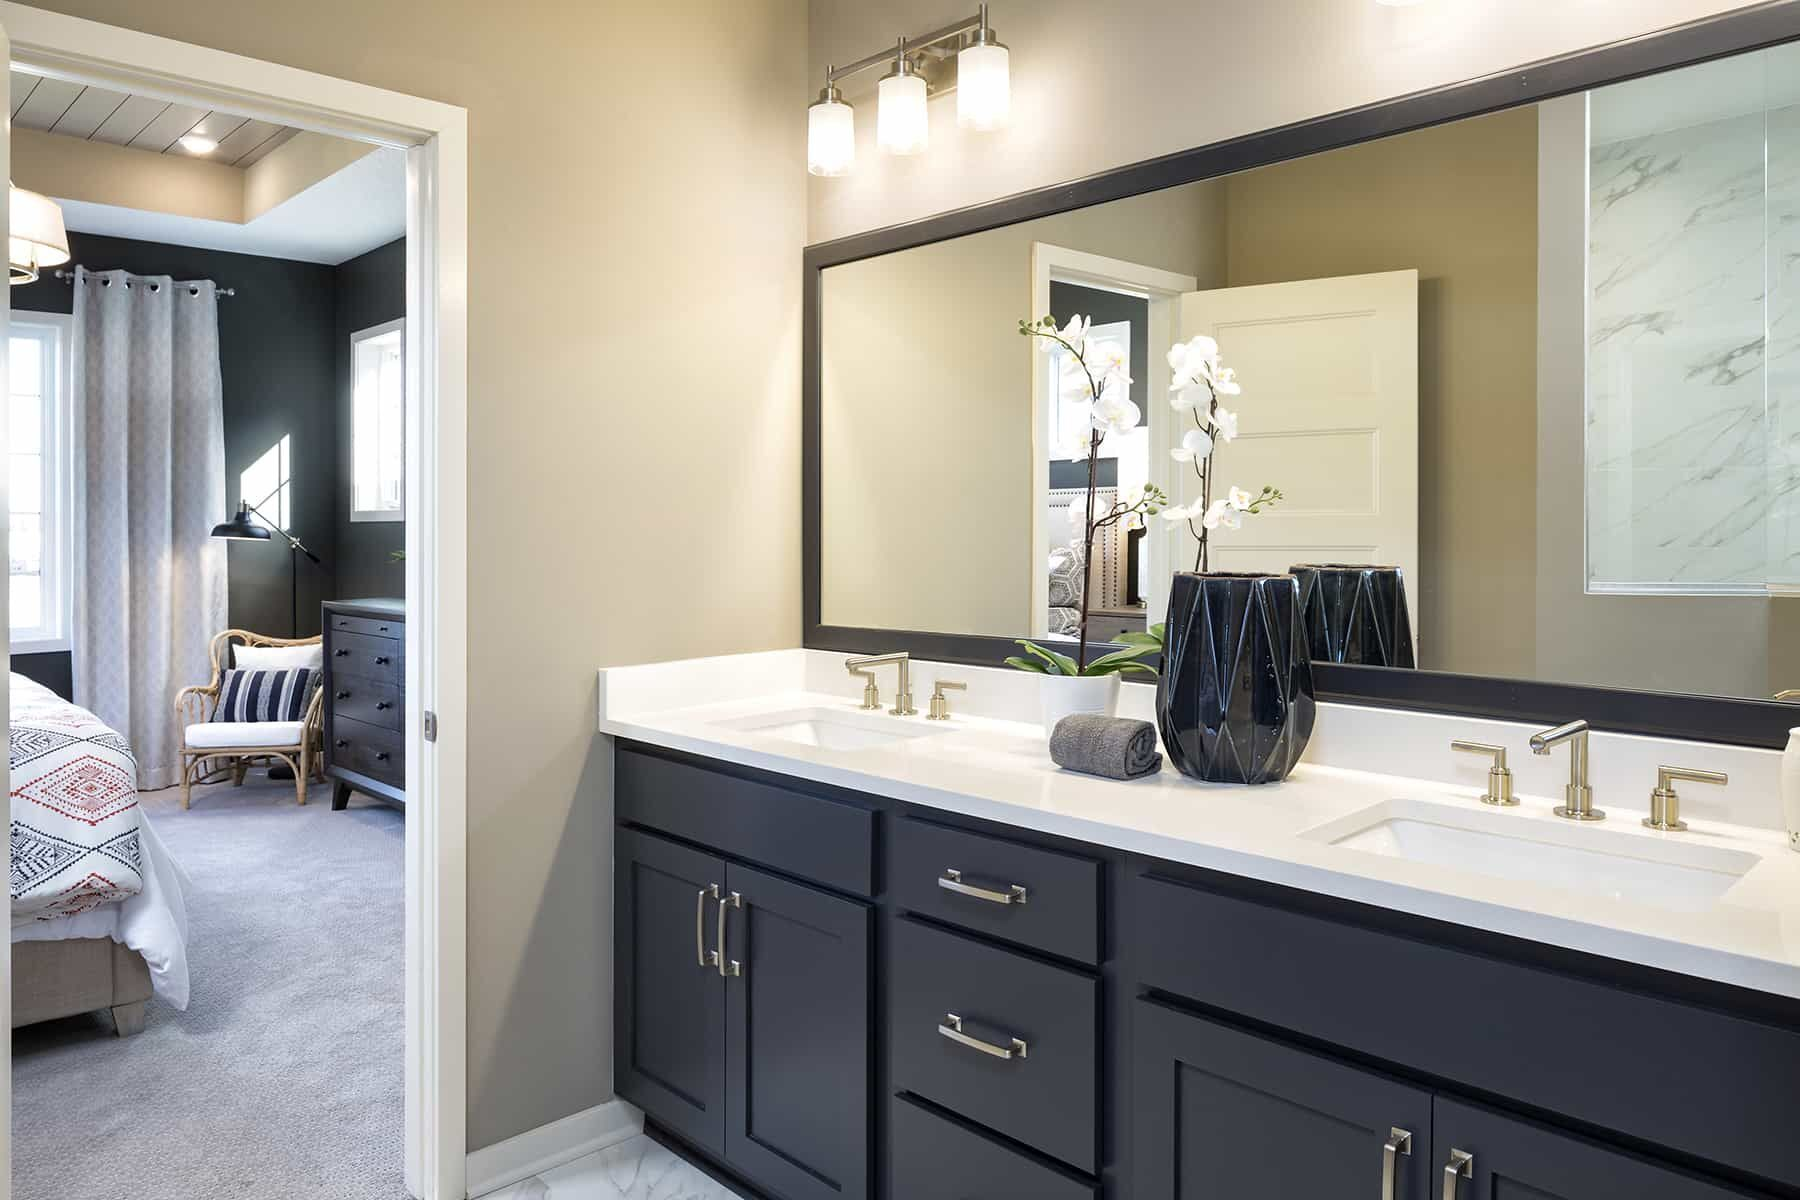 Bathroom featured in the Willow By M/I Homes in Minneapolis-St. Paul, MN